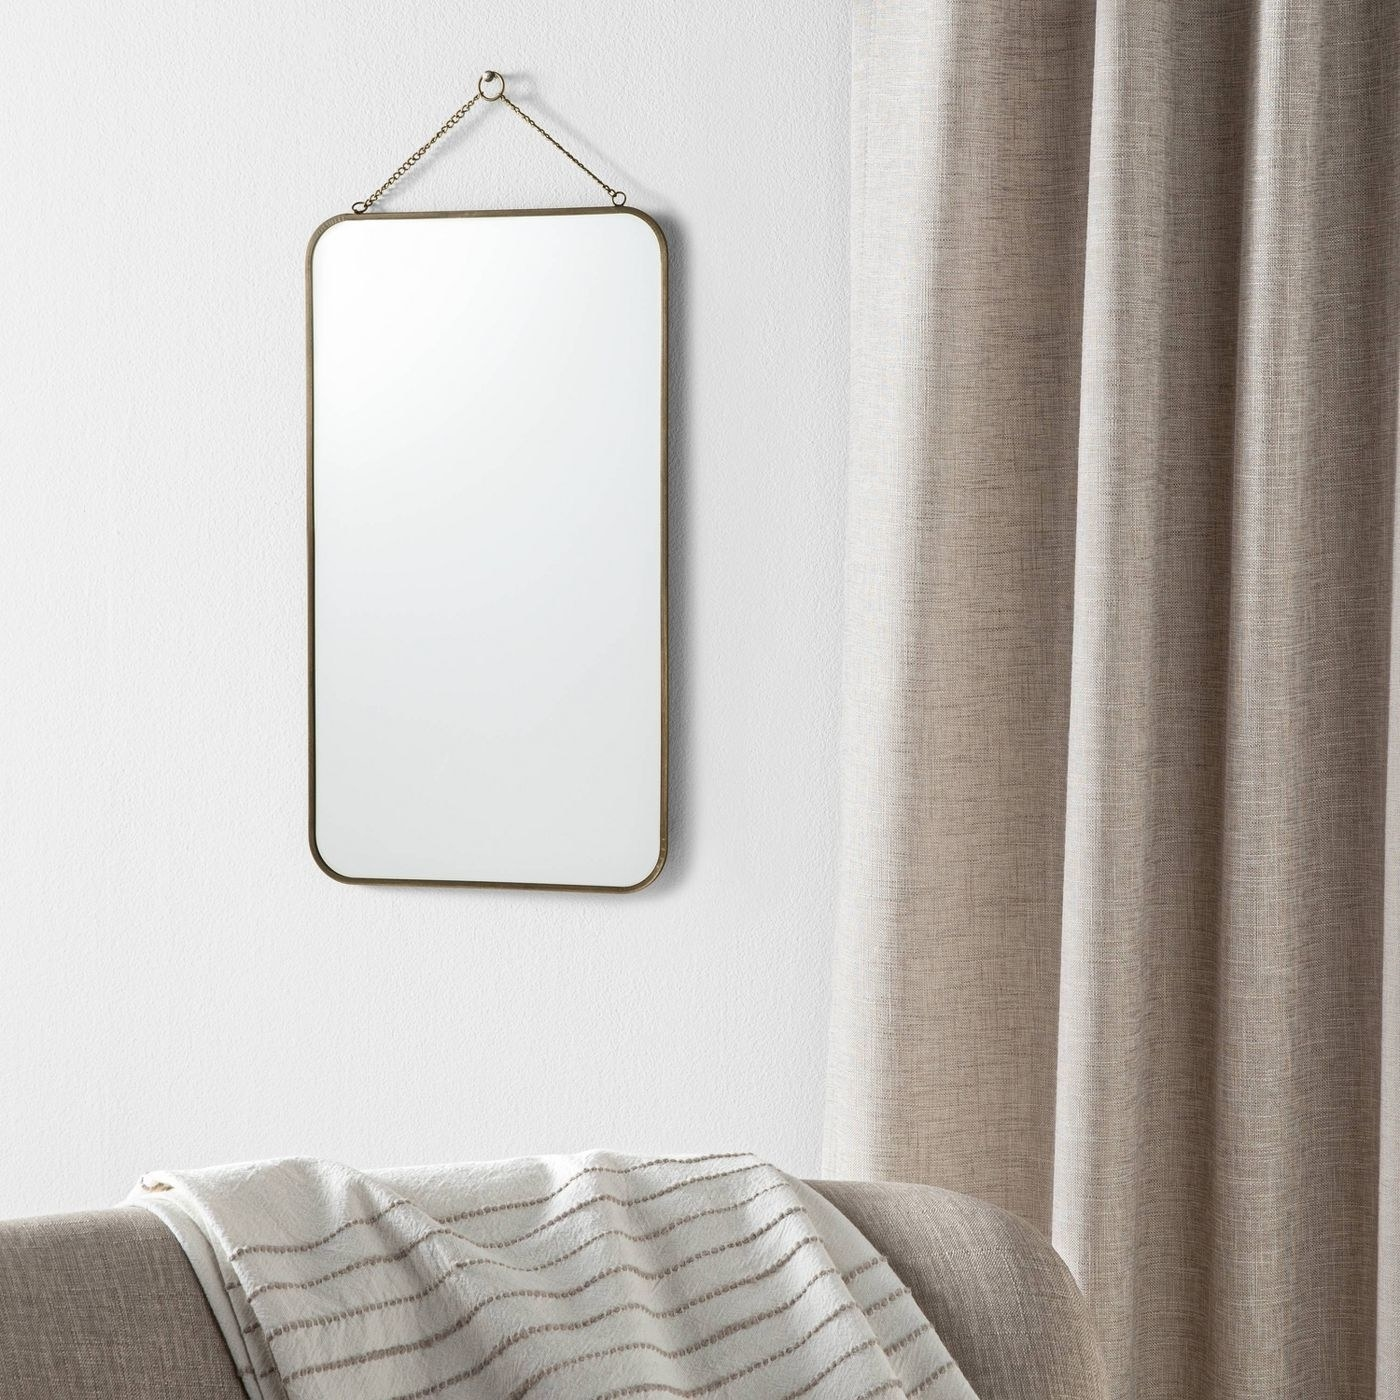 The rectangular mirror with brass-finish metal frame